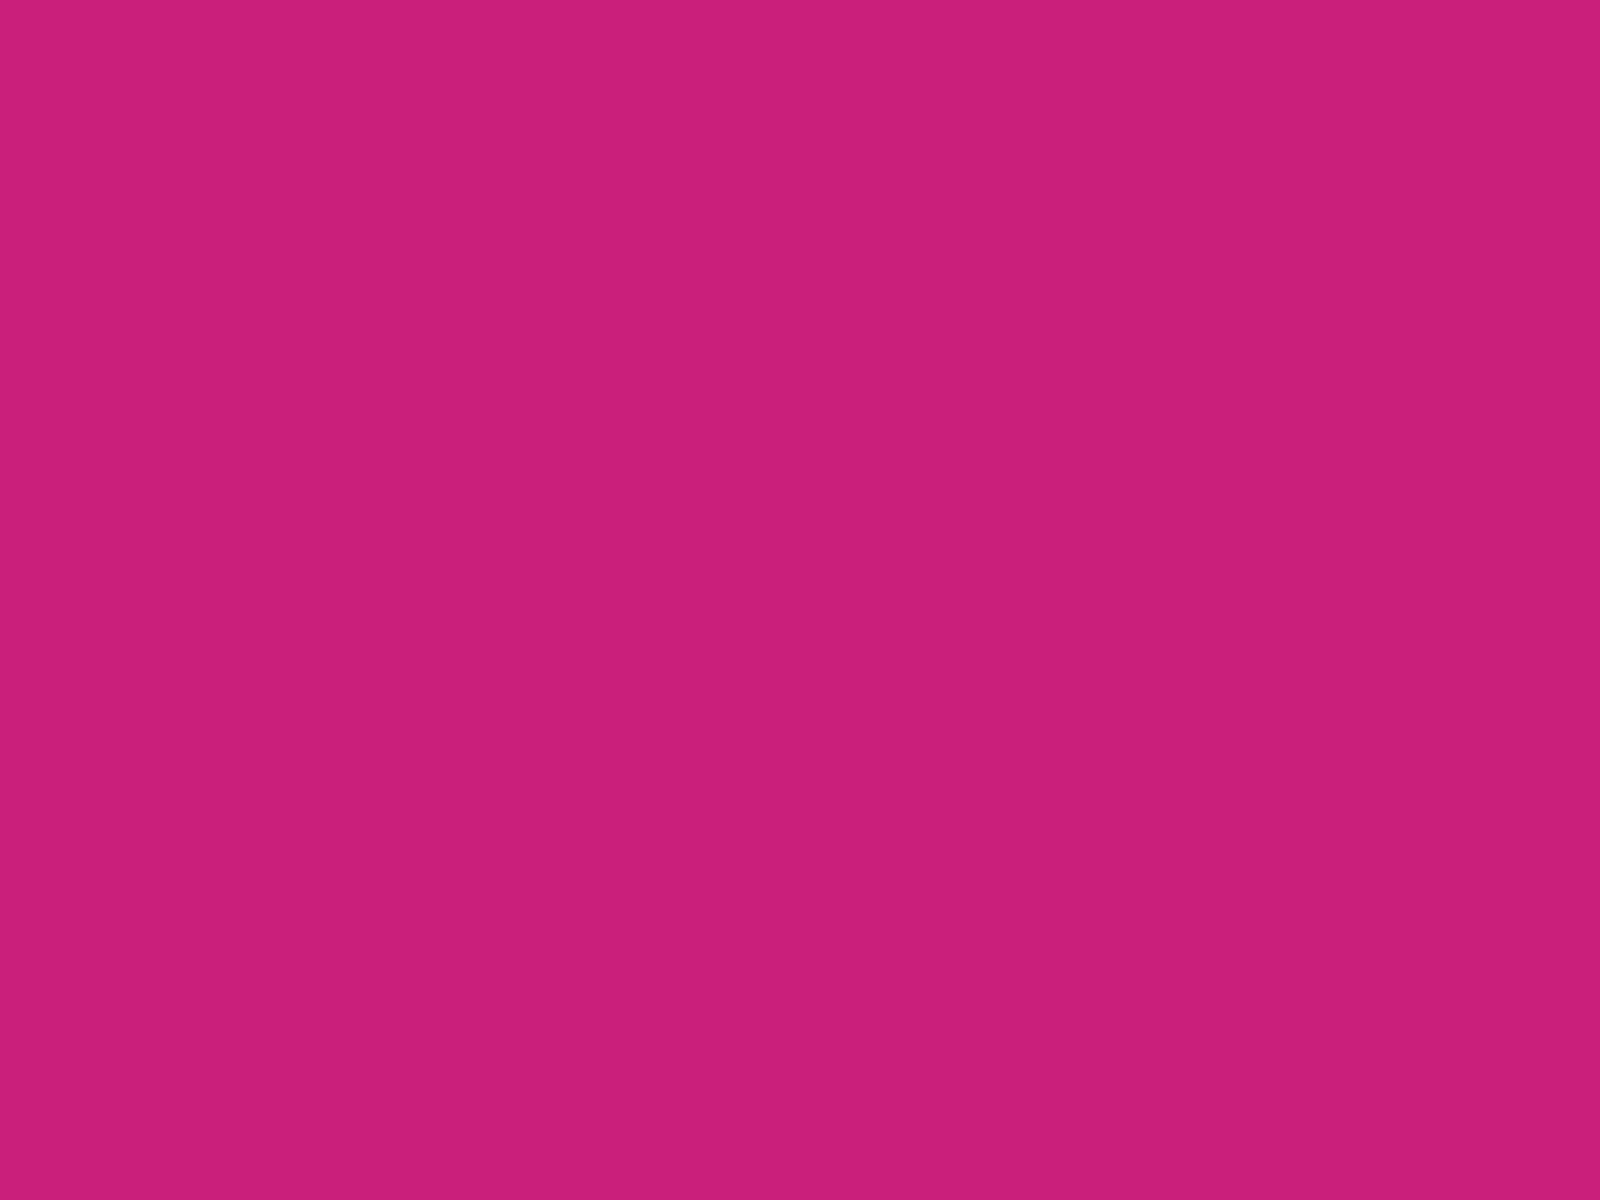 1600x1200 Magenta Dye Solid Color Background